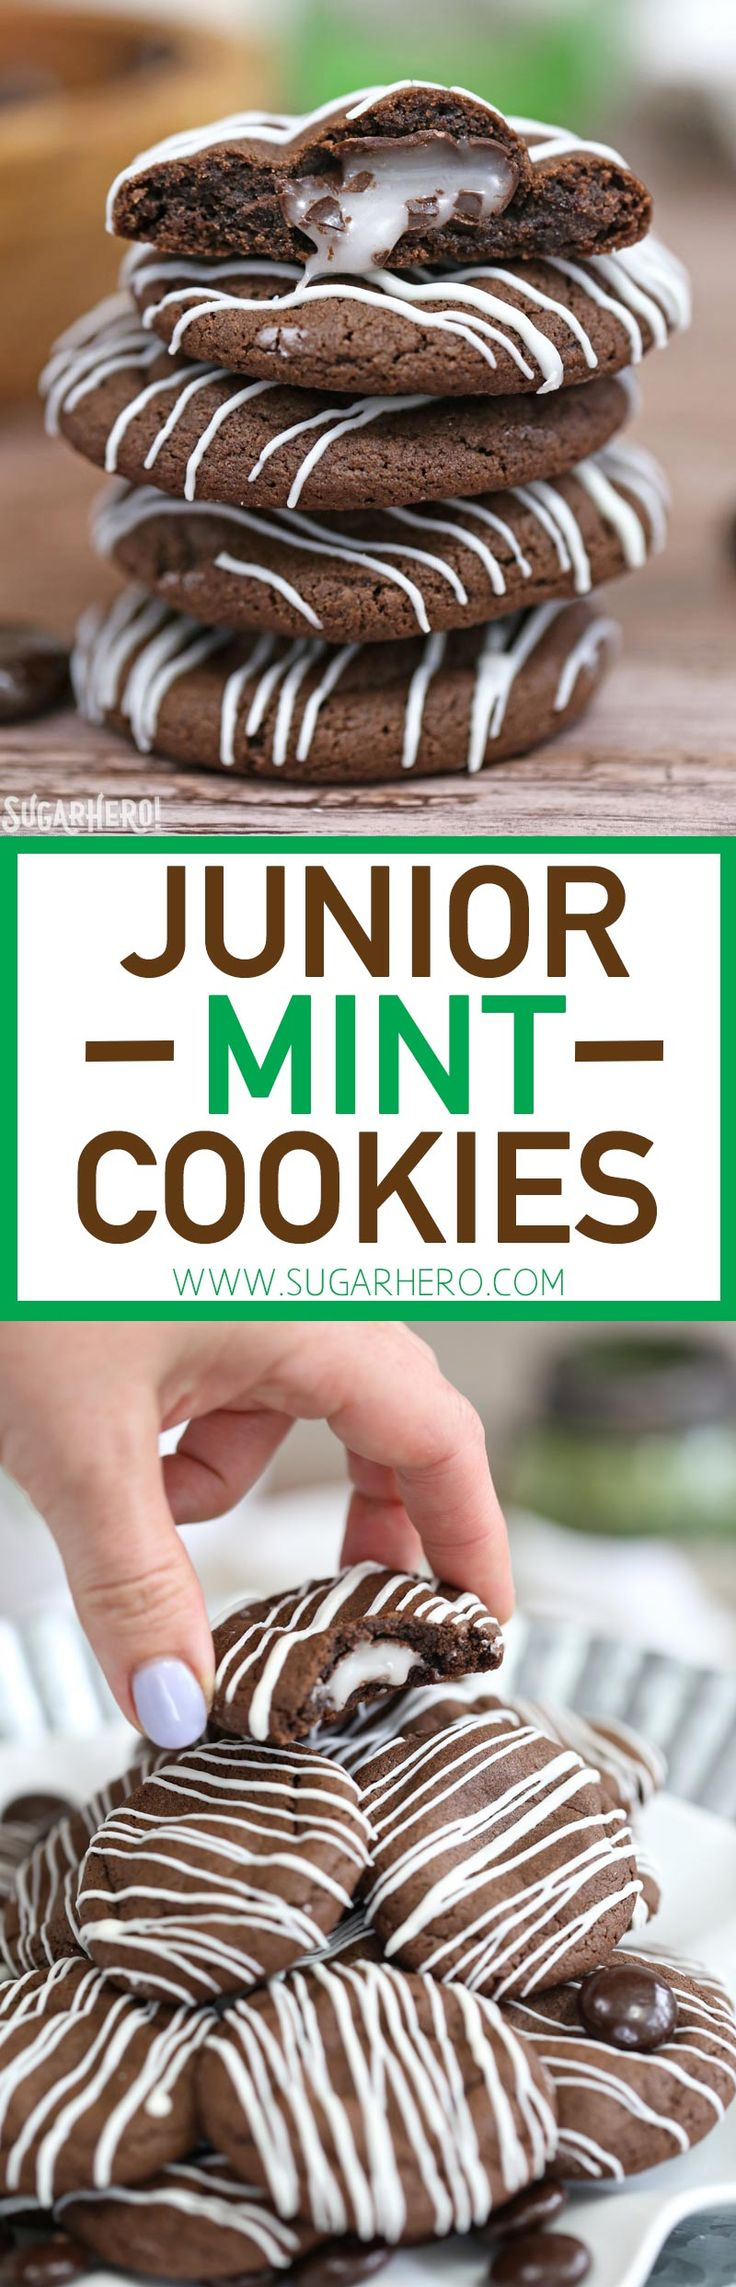 Junior Mint Cookies are soft and chewy chocolate-mint cookies, with a Junior Mint baked right into the center! | From http://SugarHero.com